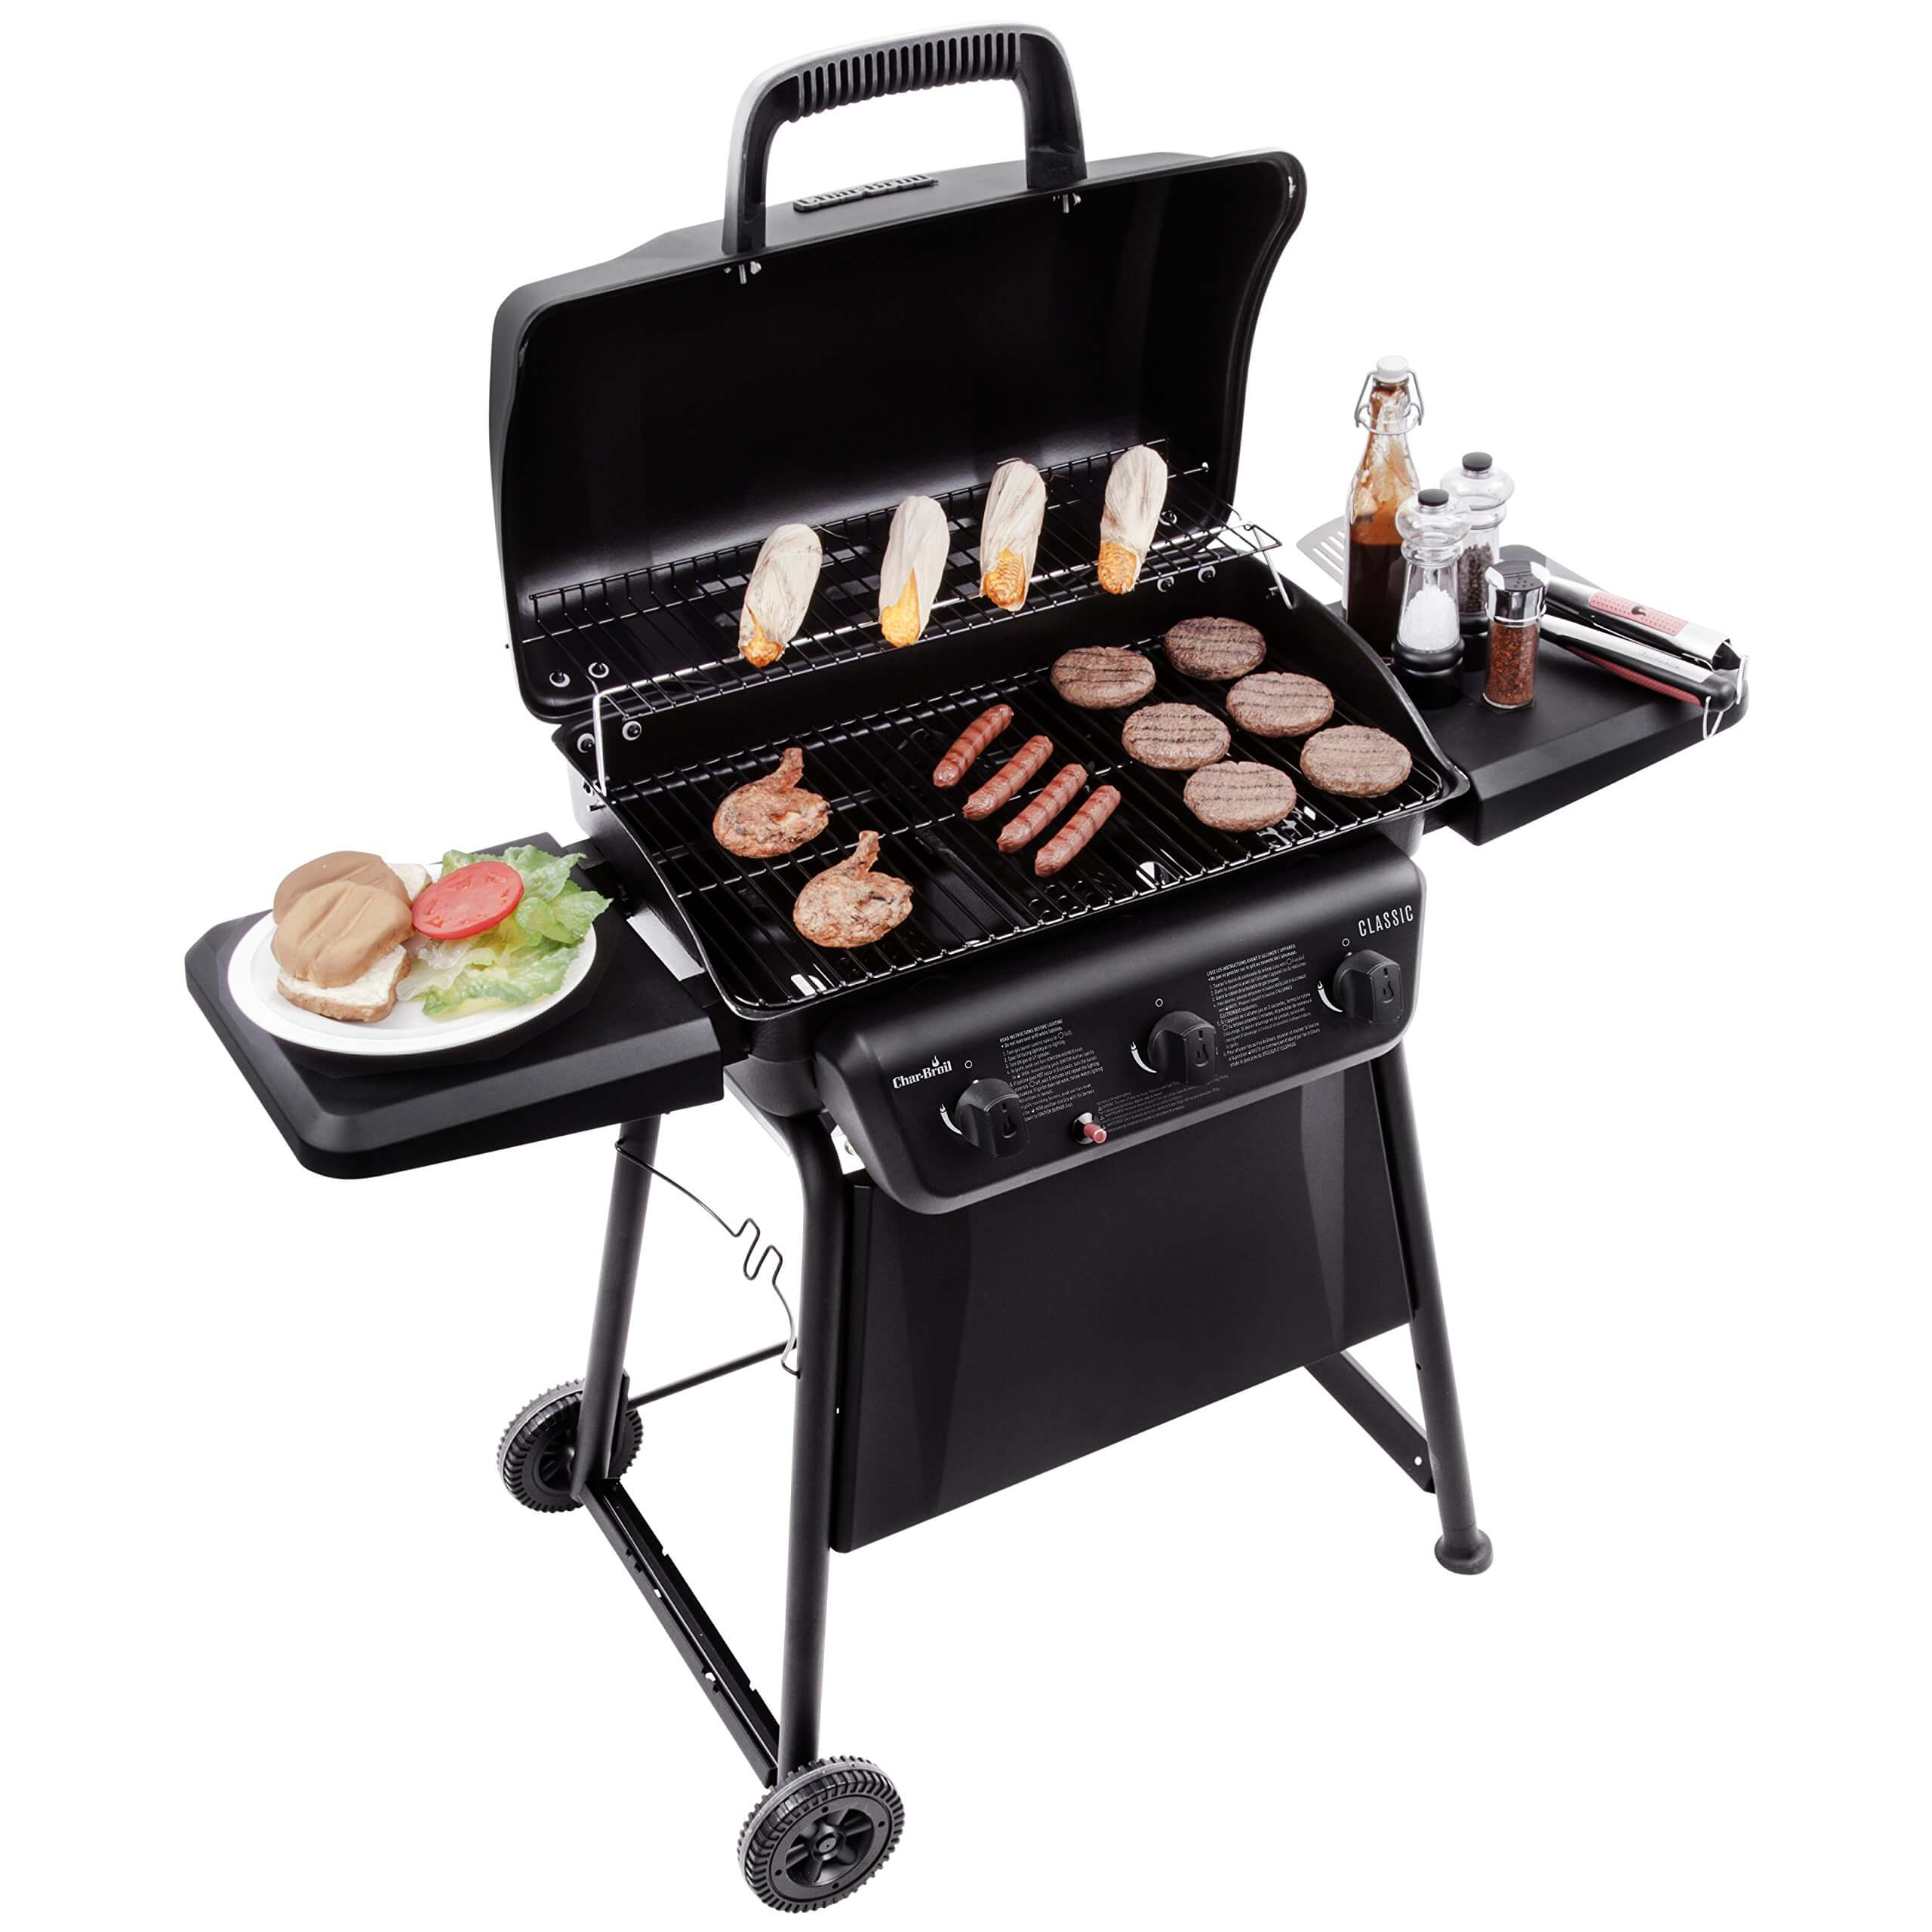 Best Gas Grill under $300 for Delicious and Easy Home Grilling, best gas grills under 300, cheap gas grills, best small gas grill, Char-Broil Classic 360 3-Burner Gas Grill, best gas grills under $200